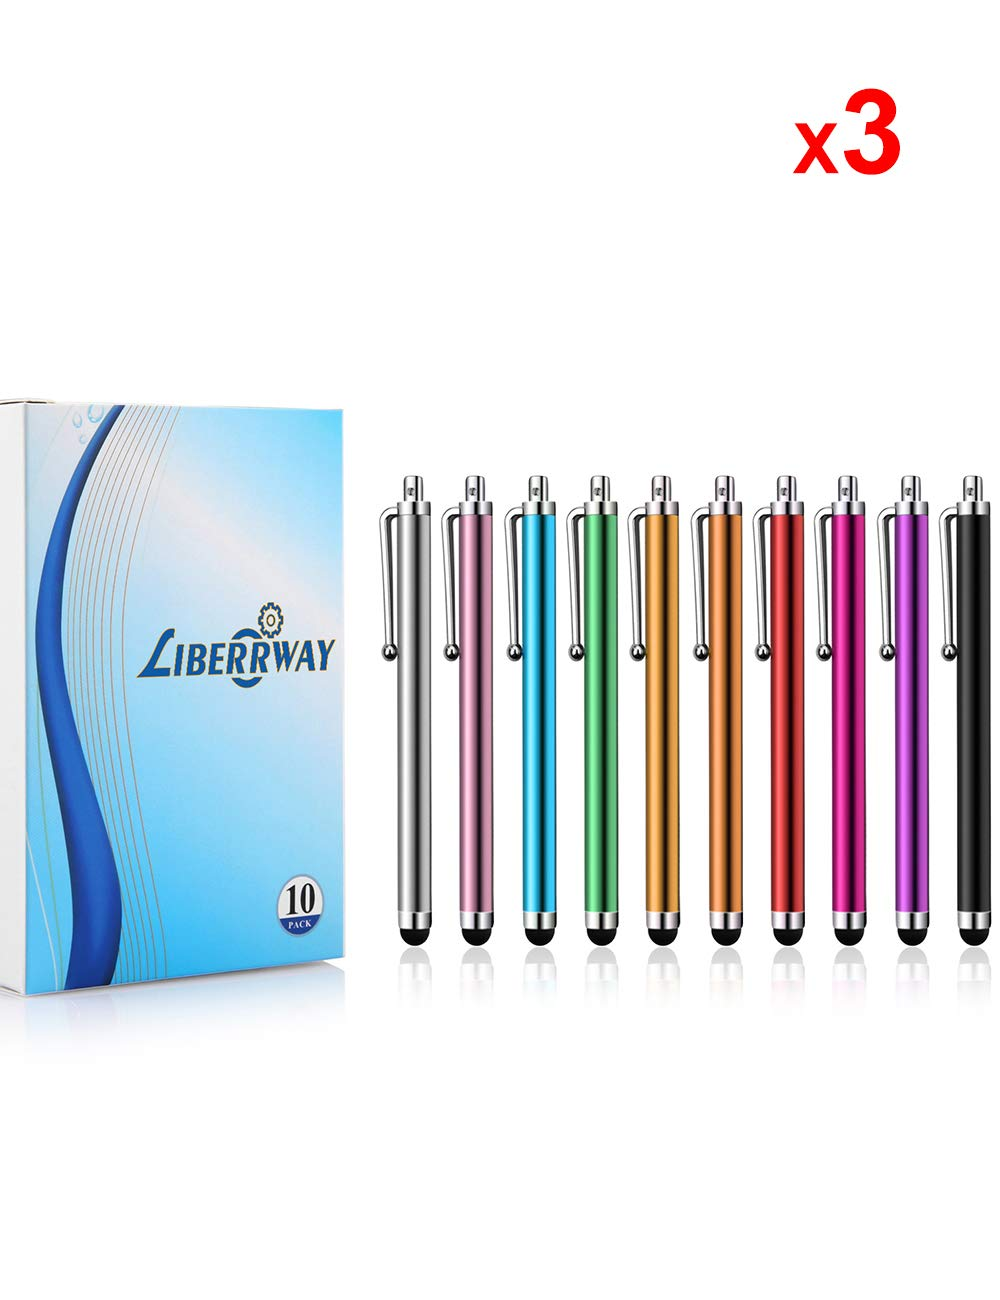 LIBERRWAY Stylus Pen 30 Pack of Pink Purple Black Green Silver Stylus Universal Touch Screen